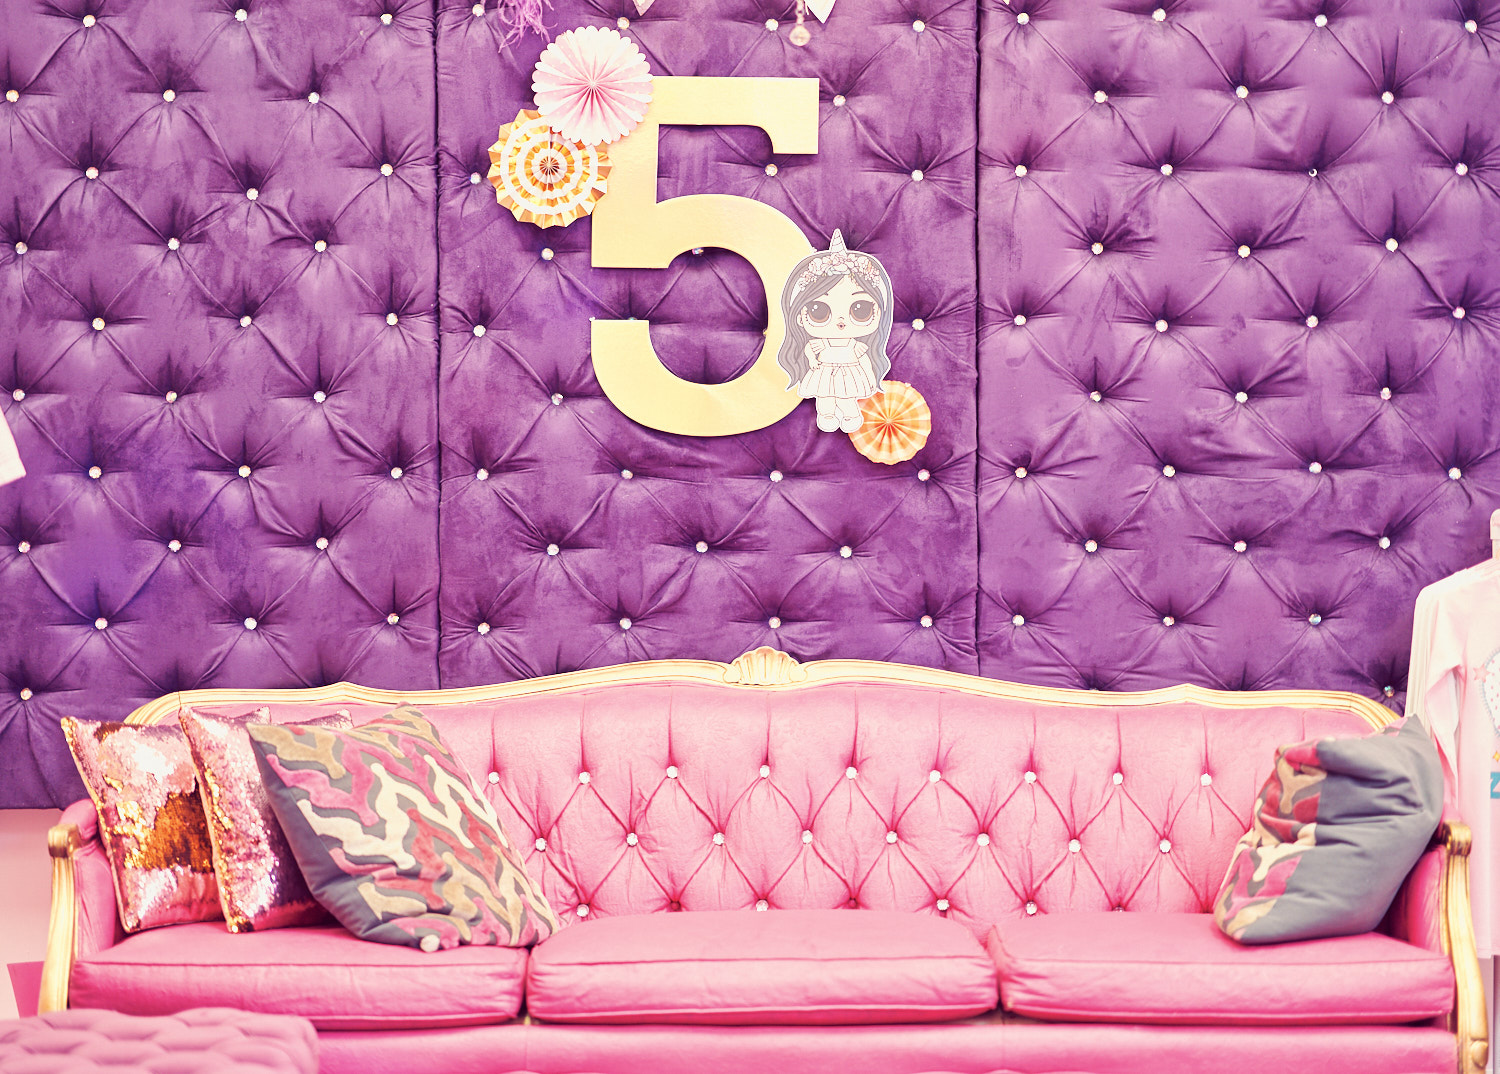 Glam is the way to go - Pink couch with purple headboard provides a perfect backdrop for your little diva.